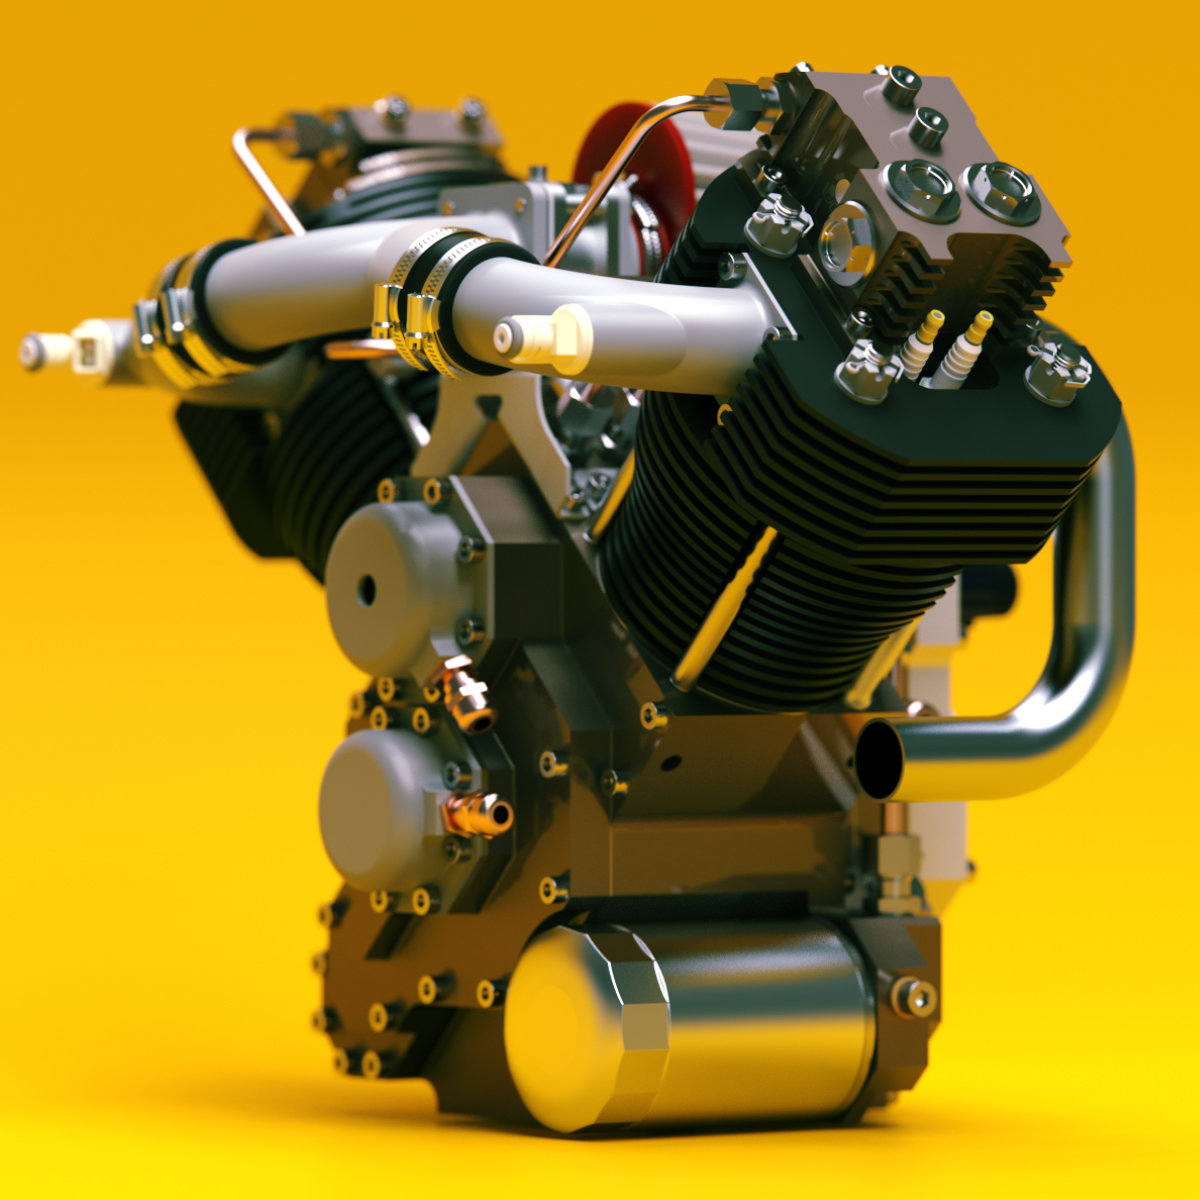 Michael marcondes engine v twin 04